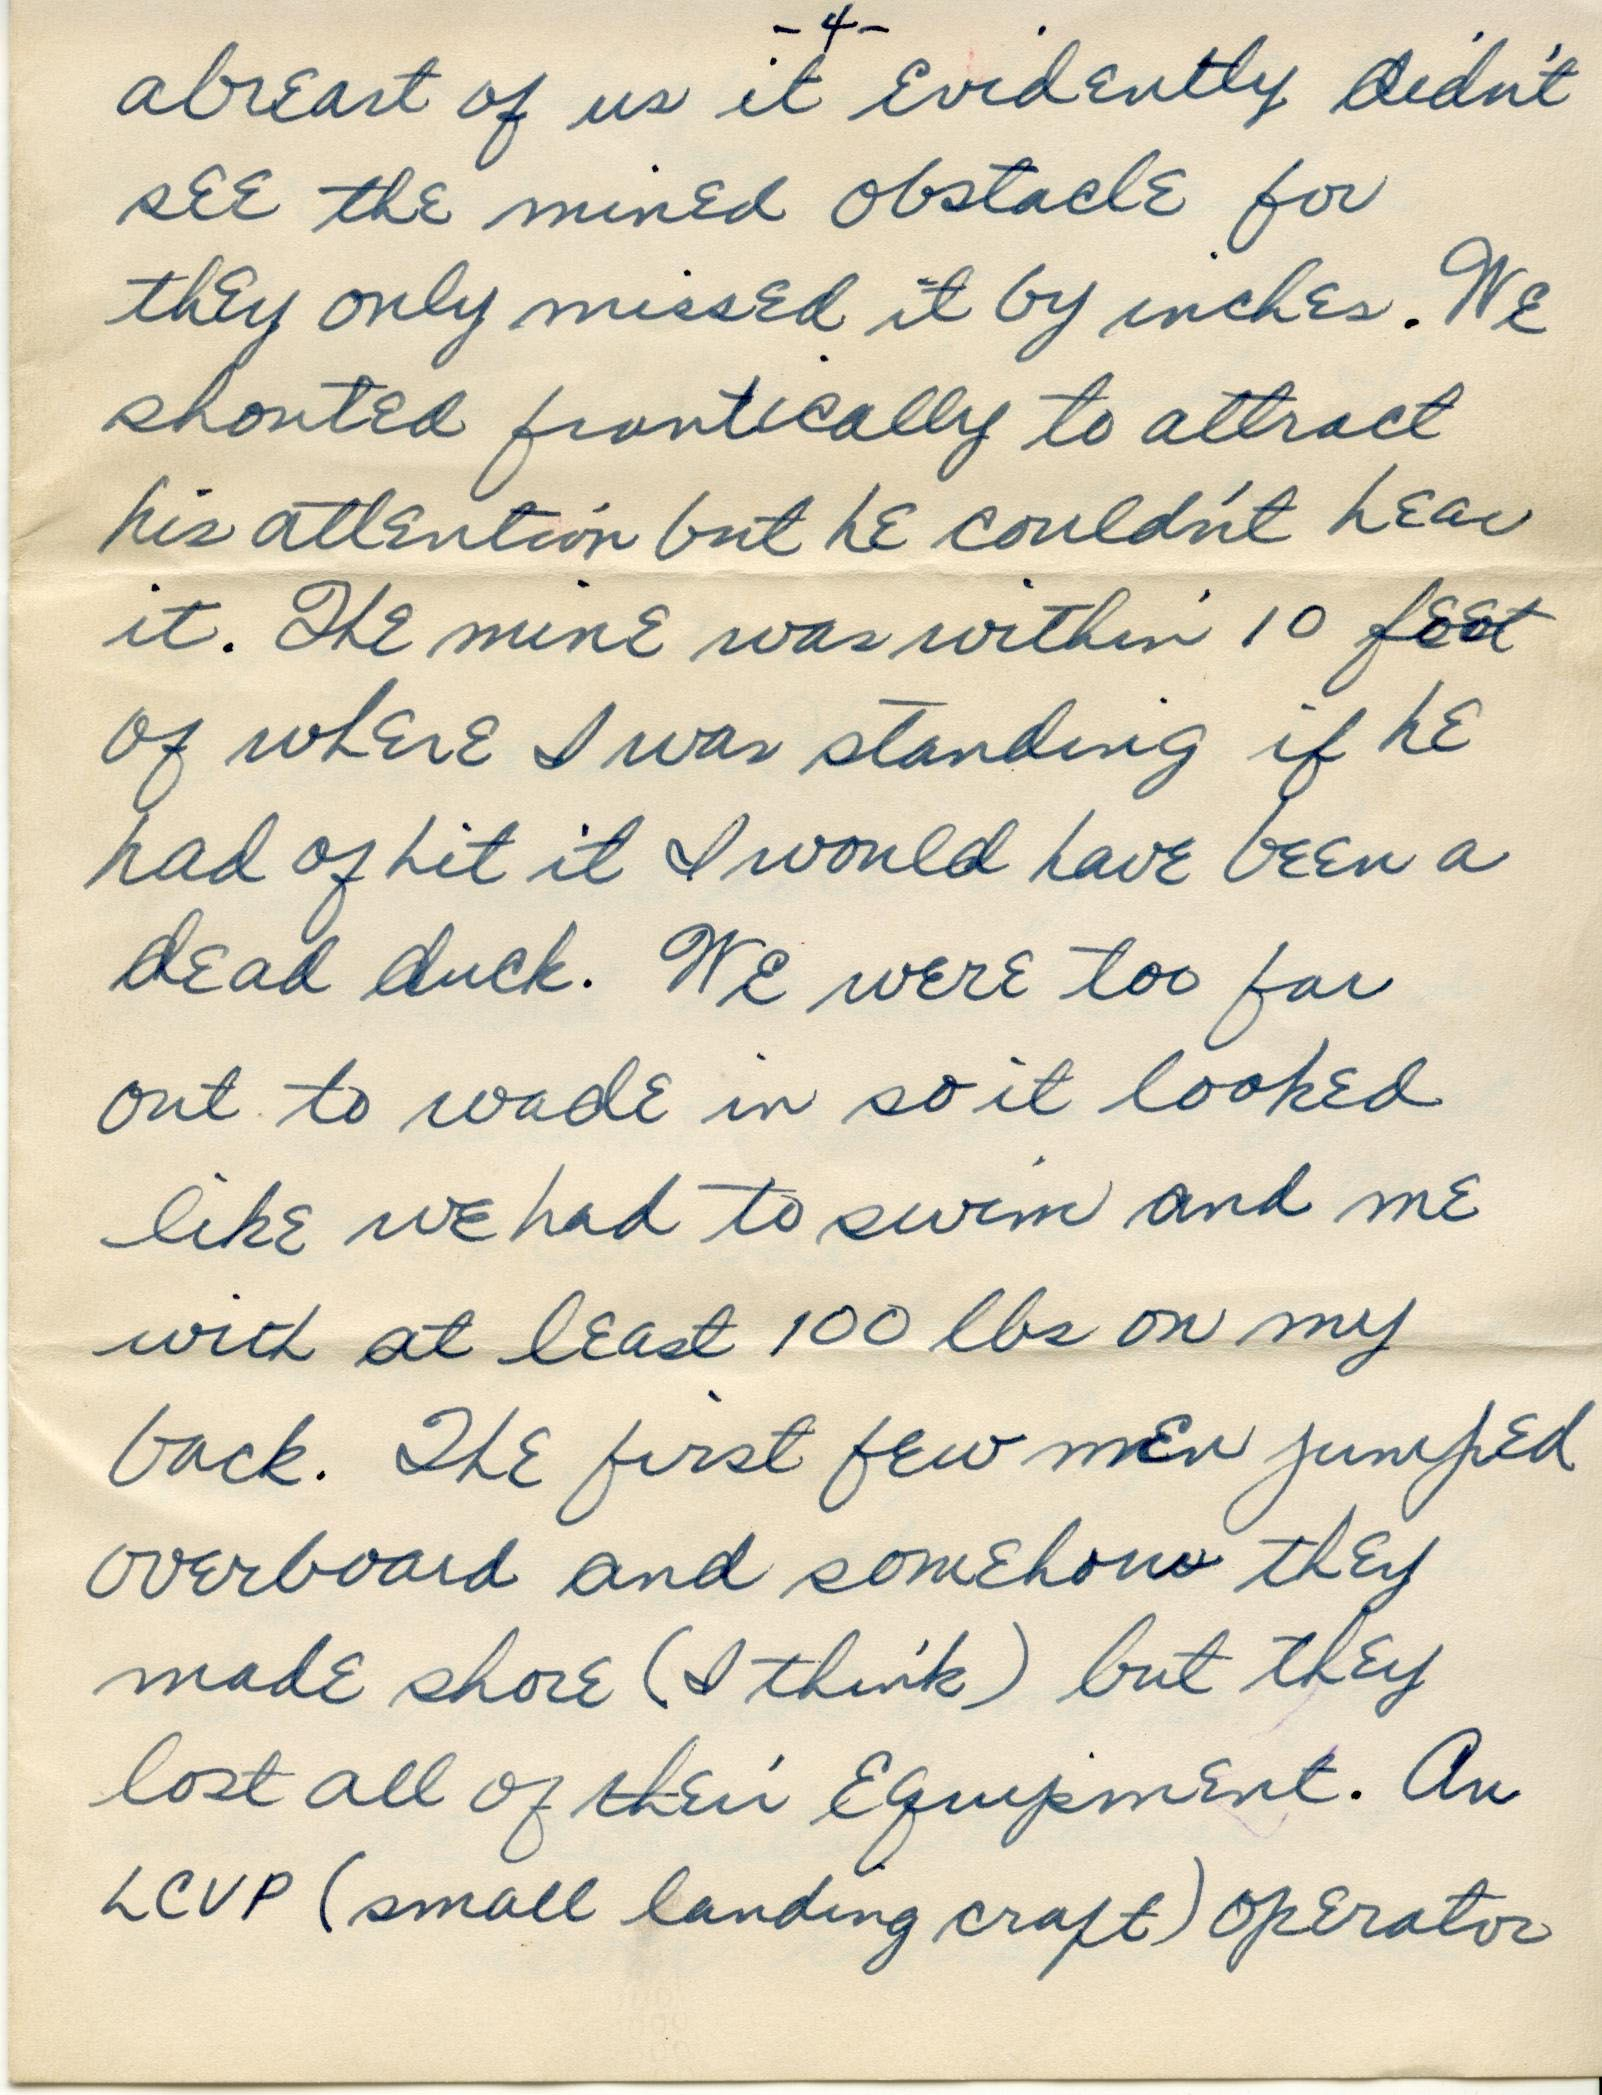 dc7bdbd879 Eight-page handwritten letter Carol Bagent from Preston Earl Bagent,  including envelope. Digital images of correspondence. 05/18/1945.